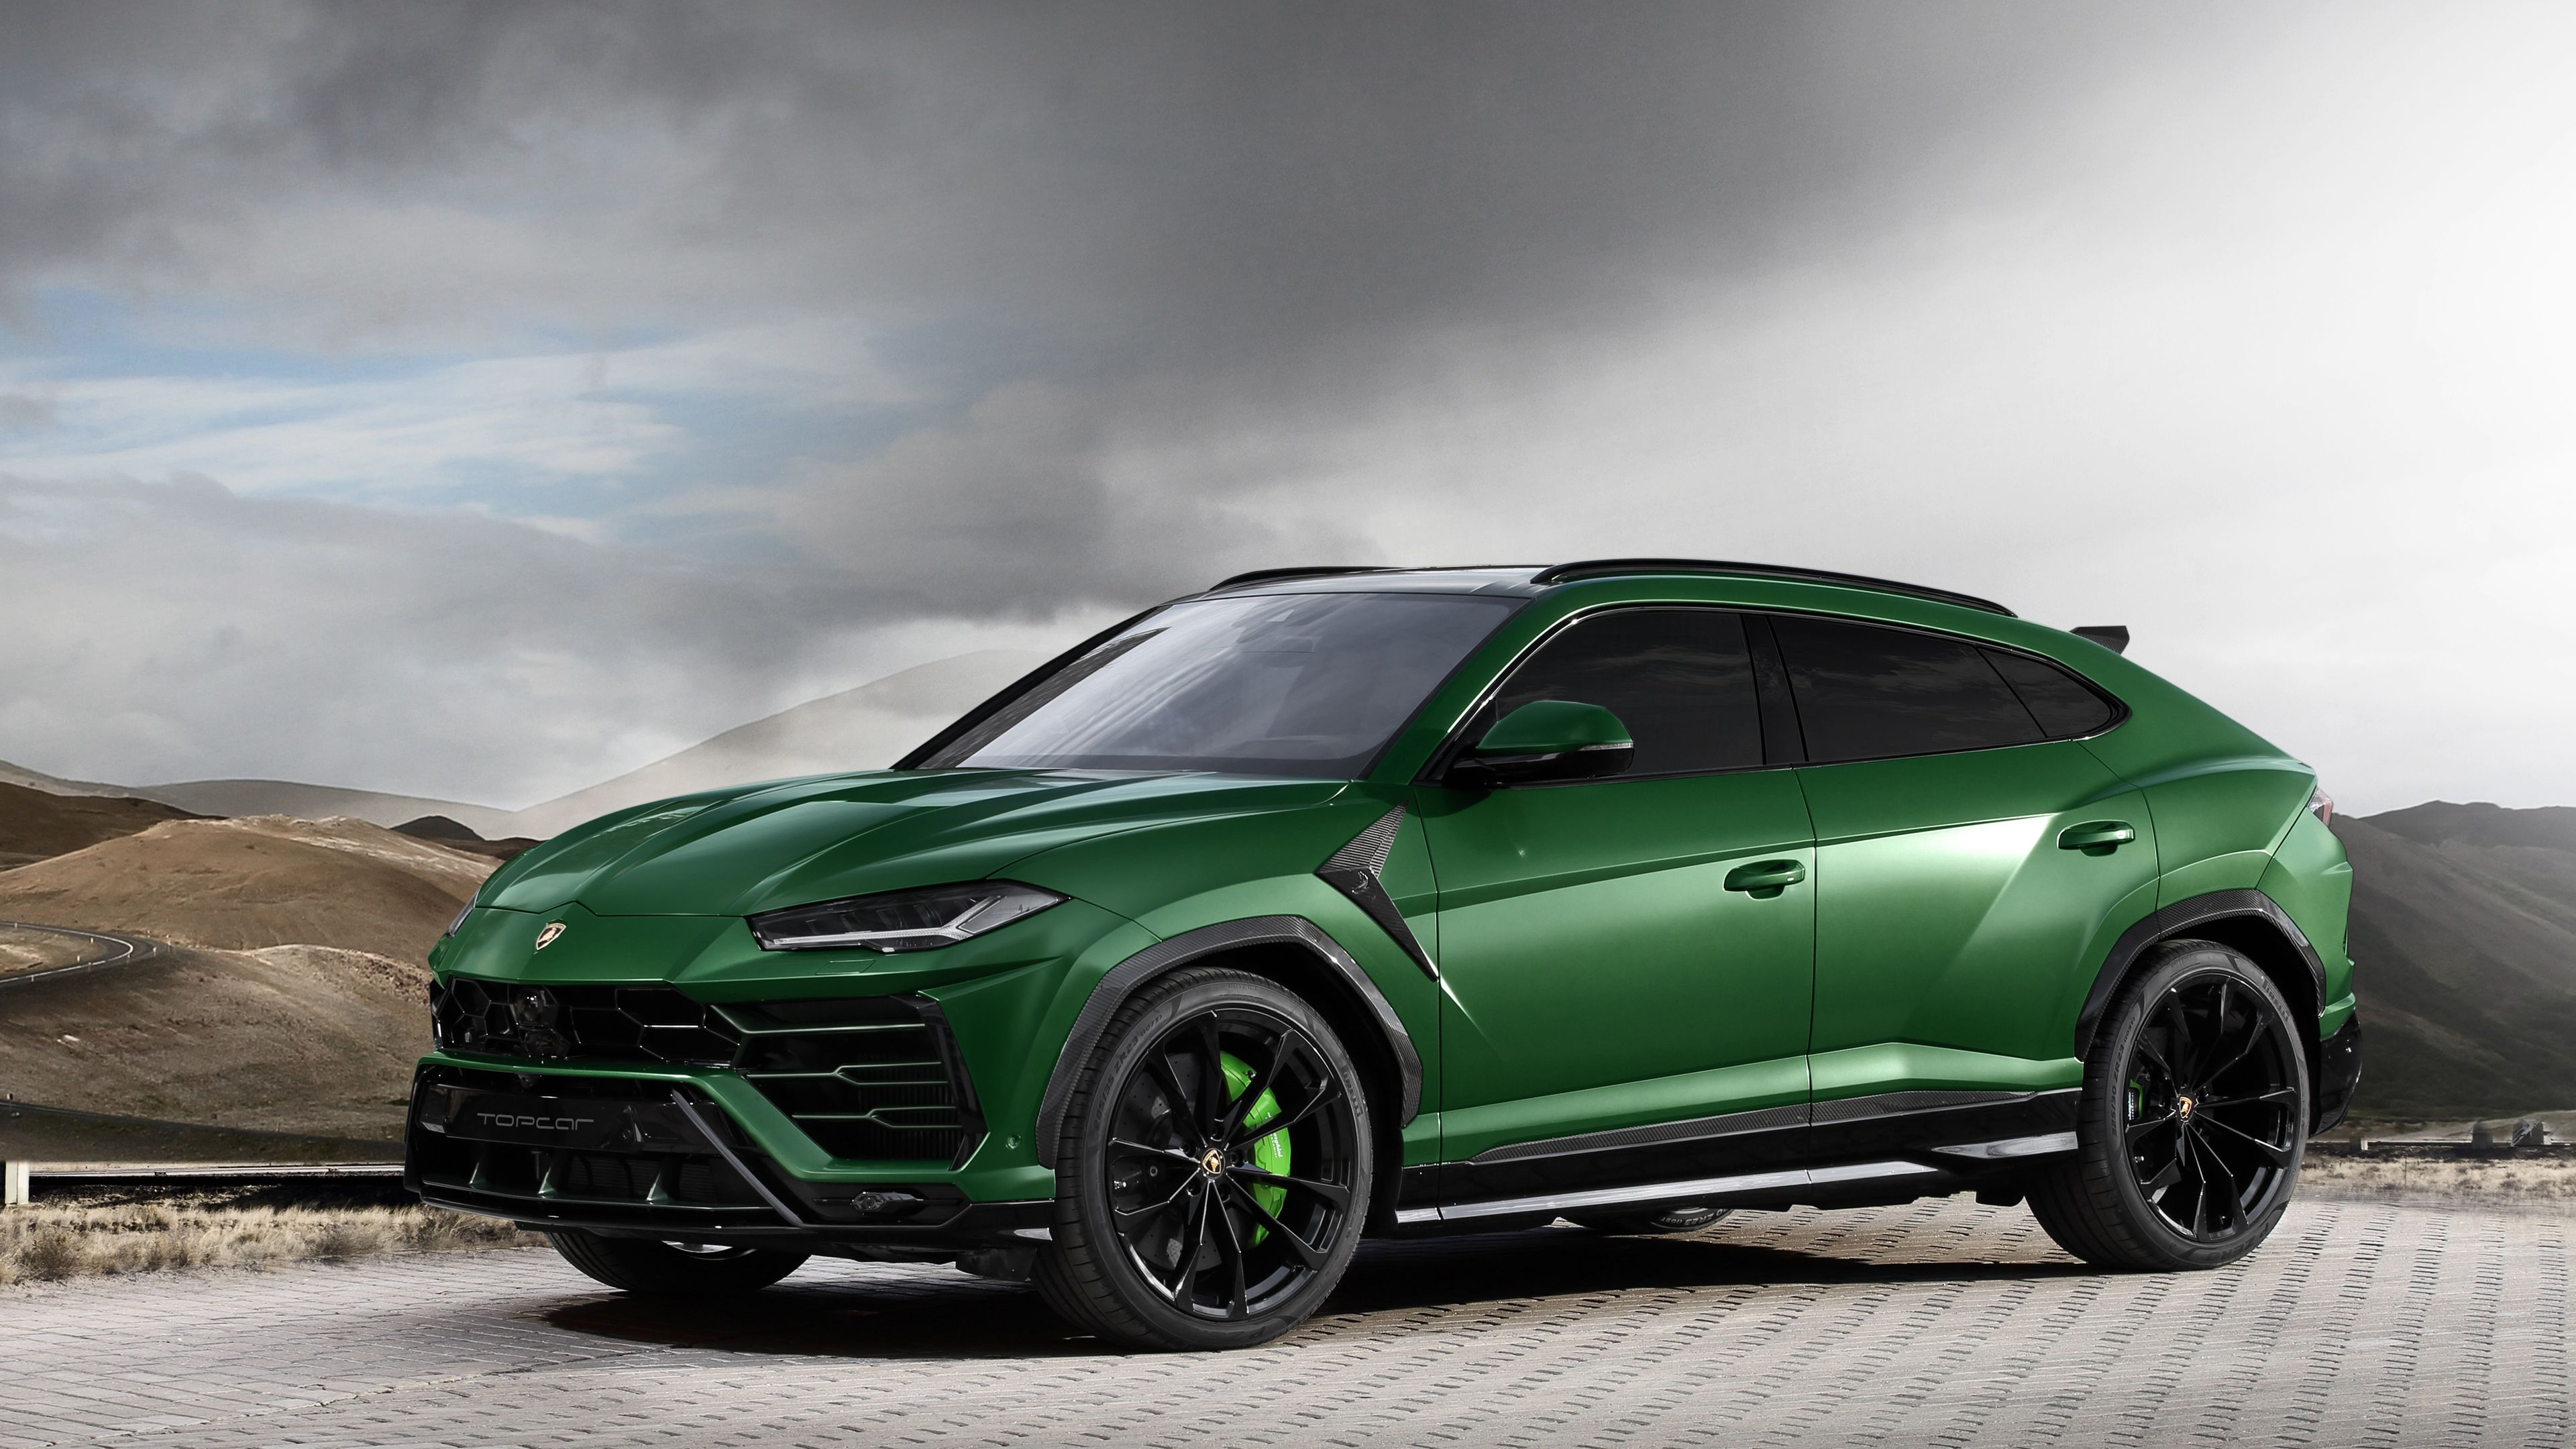 Wallpaper 4k Topcar Lamborghini Urus 2018 2018 Cars Wallpapers 4k